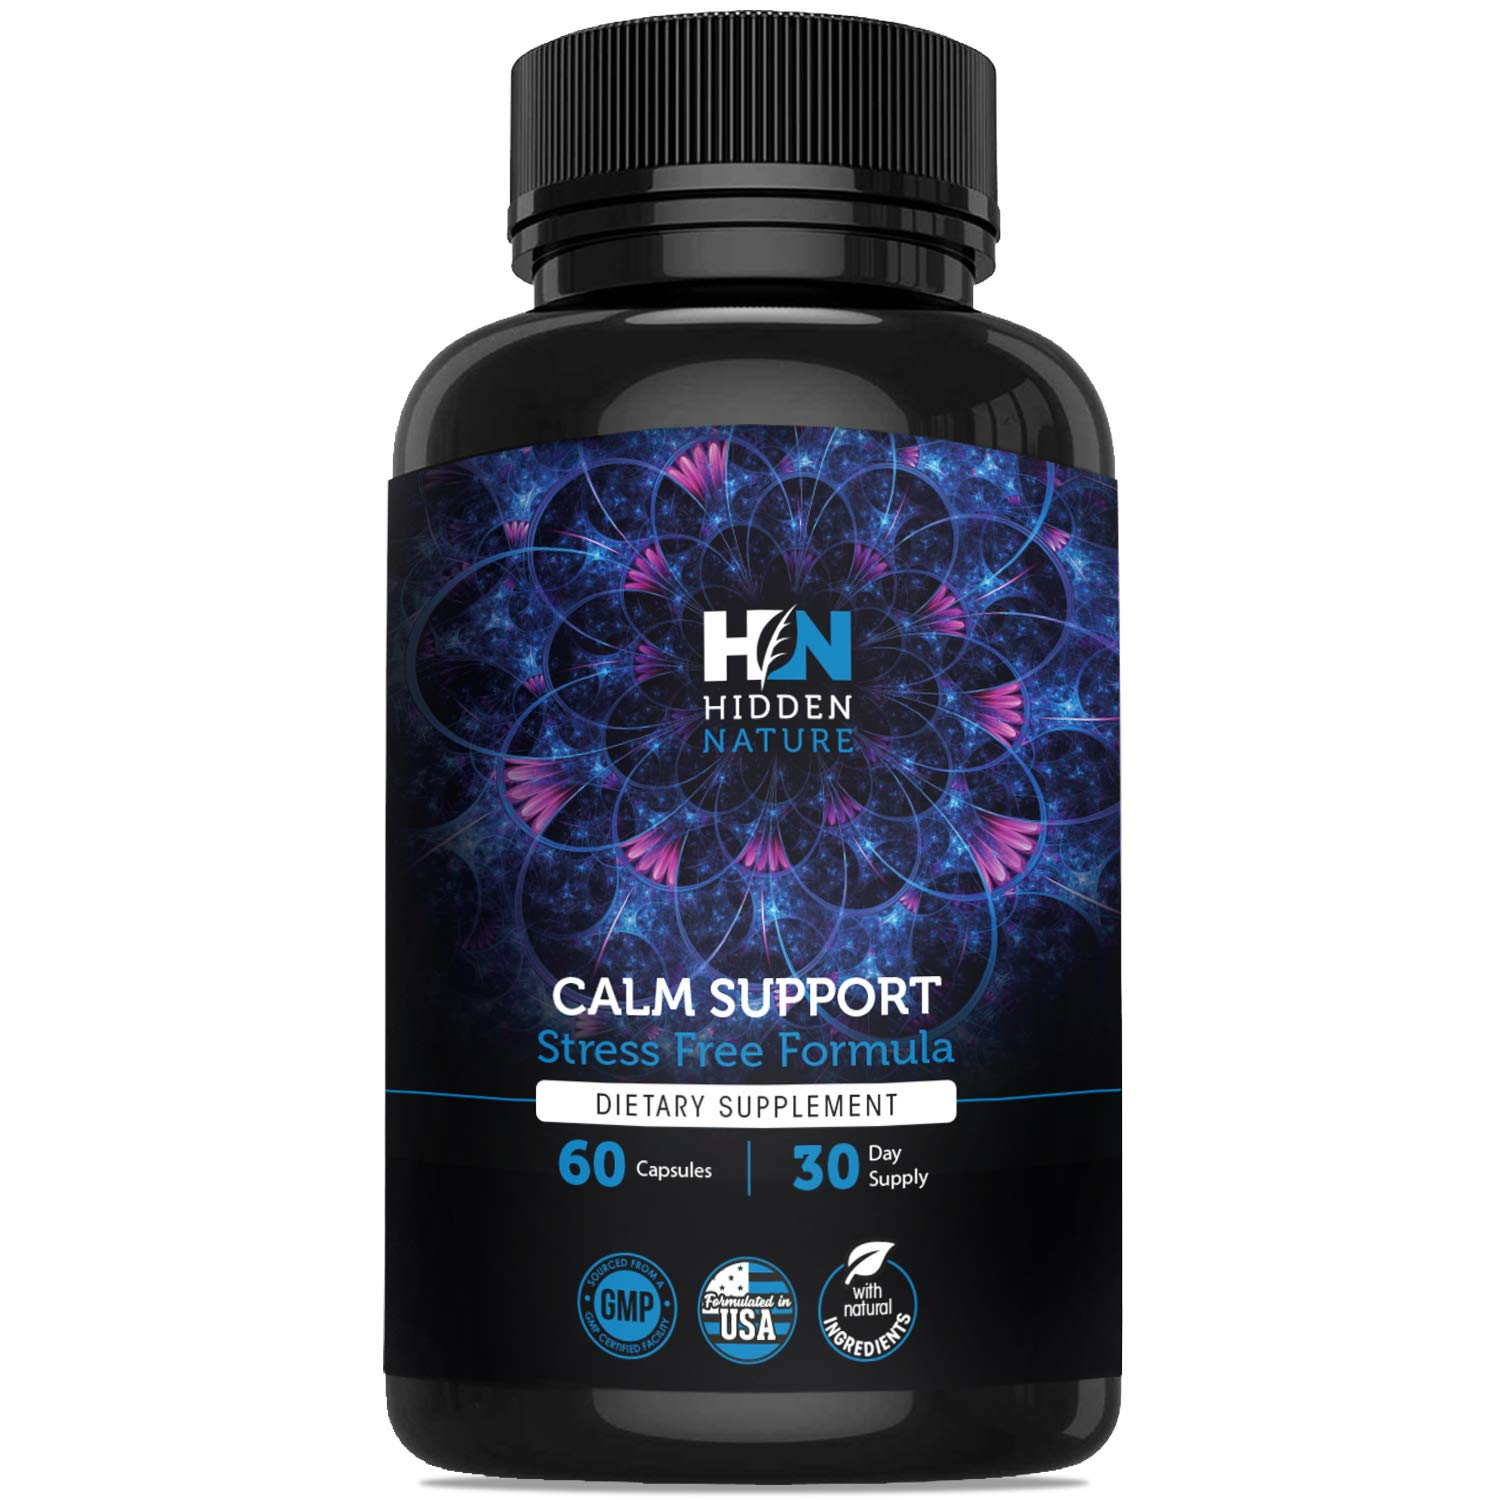 Anxiety Relief Supplements ǀ Best Stress Relief for Relaxation & Depression ǀ Mood Boost, Anti Anxiety, Anti-Depressant, Serotonin & Dopamine Enhancer with Ashwagandha, 5HTP, St. John's Wort & GABA